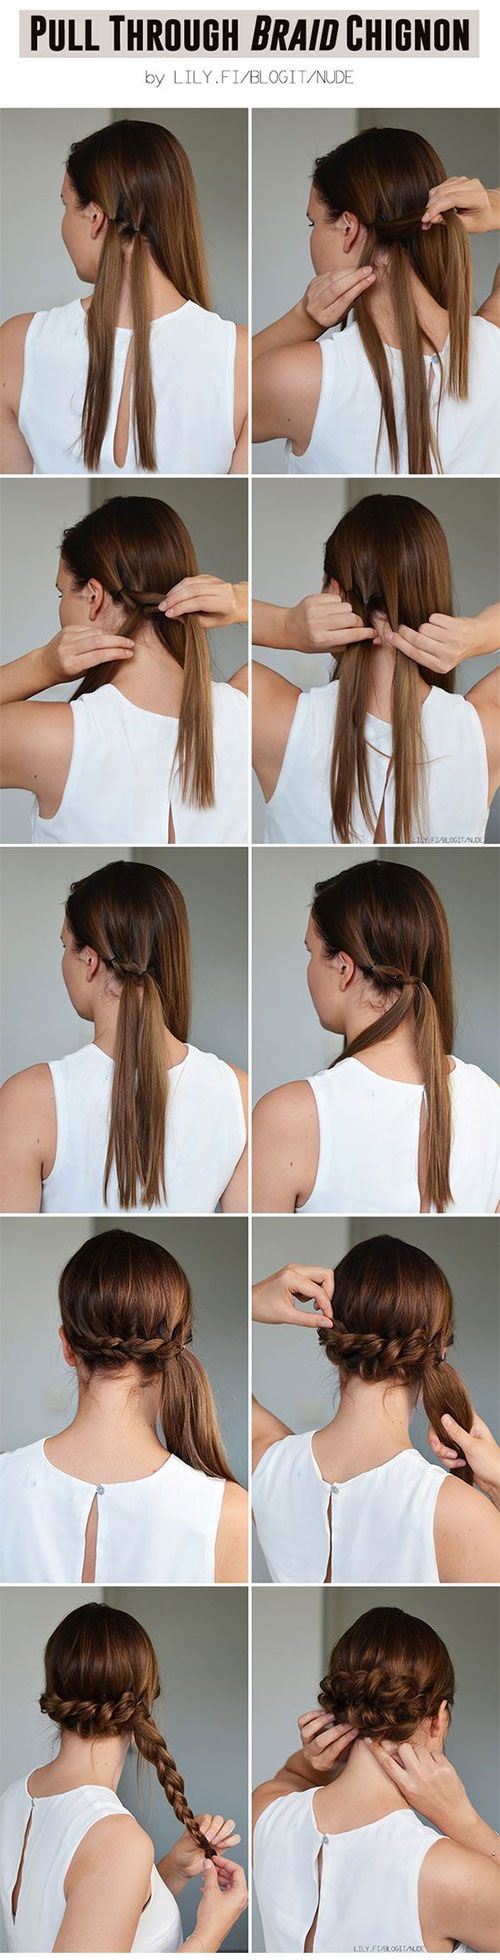 Long hair updos how to style for prom hairstyle tutorials easy